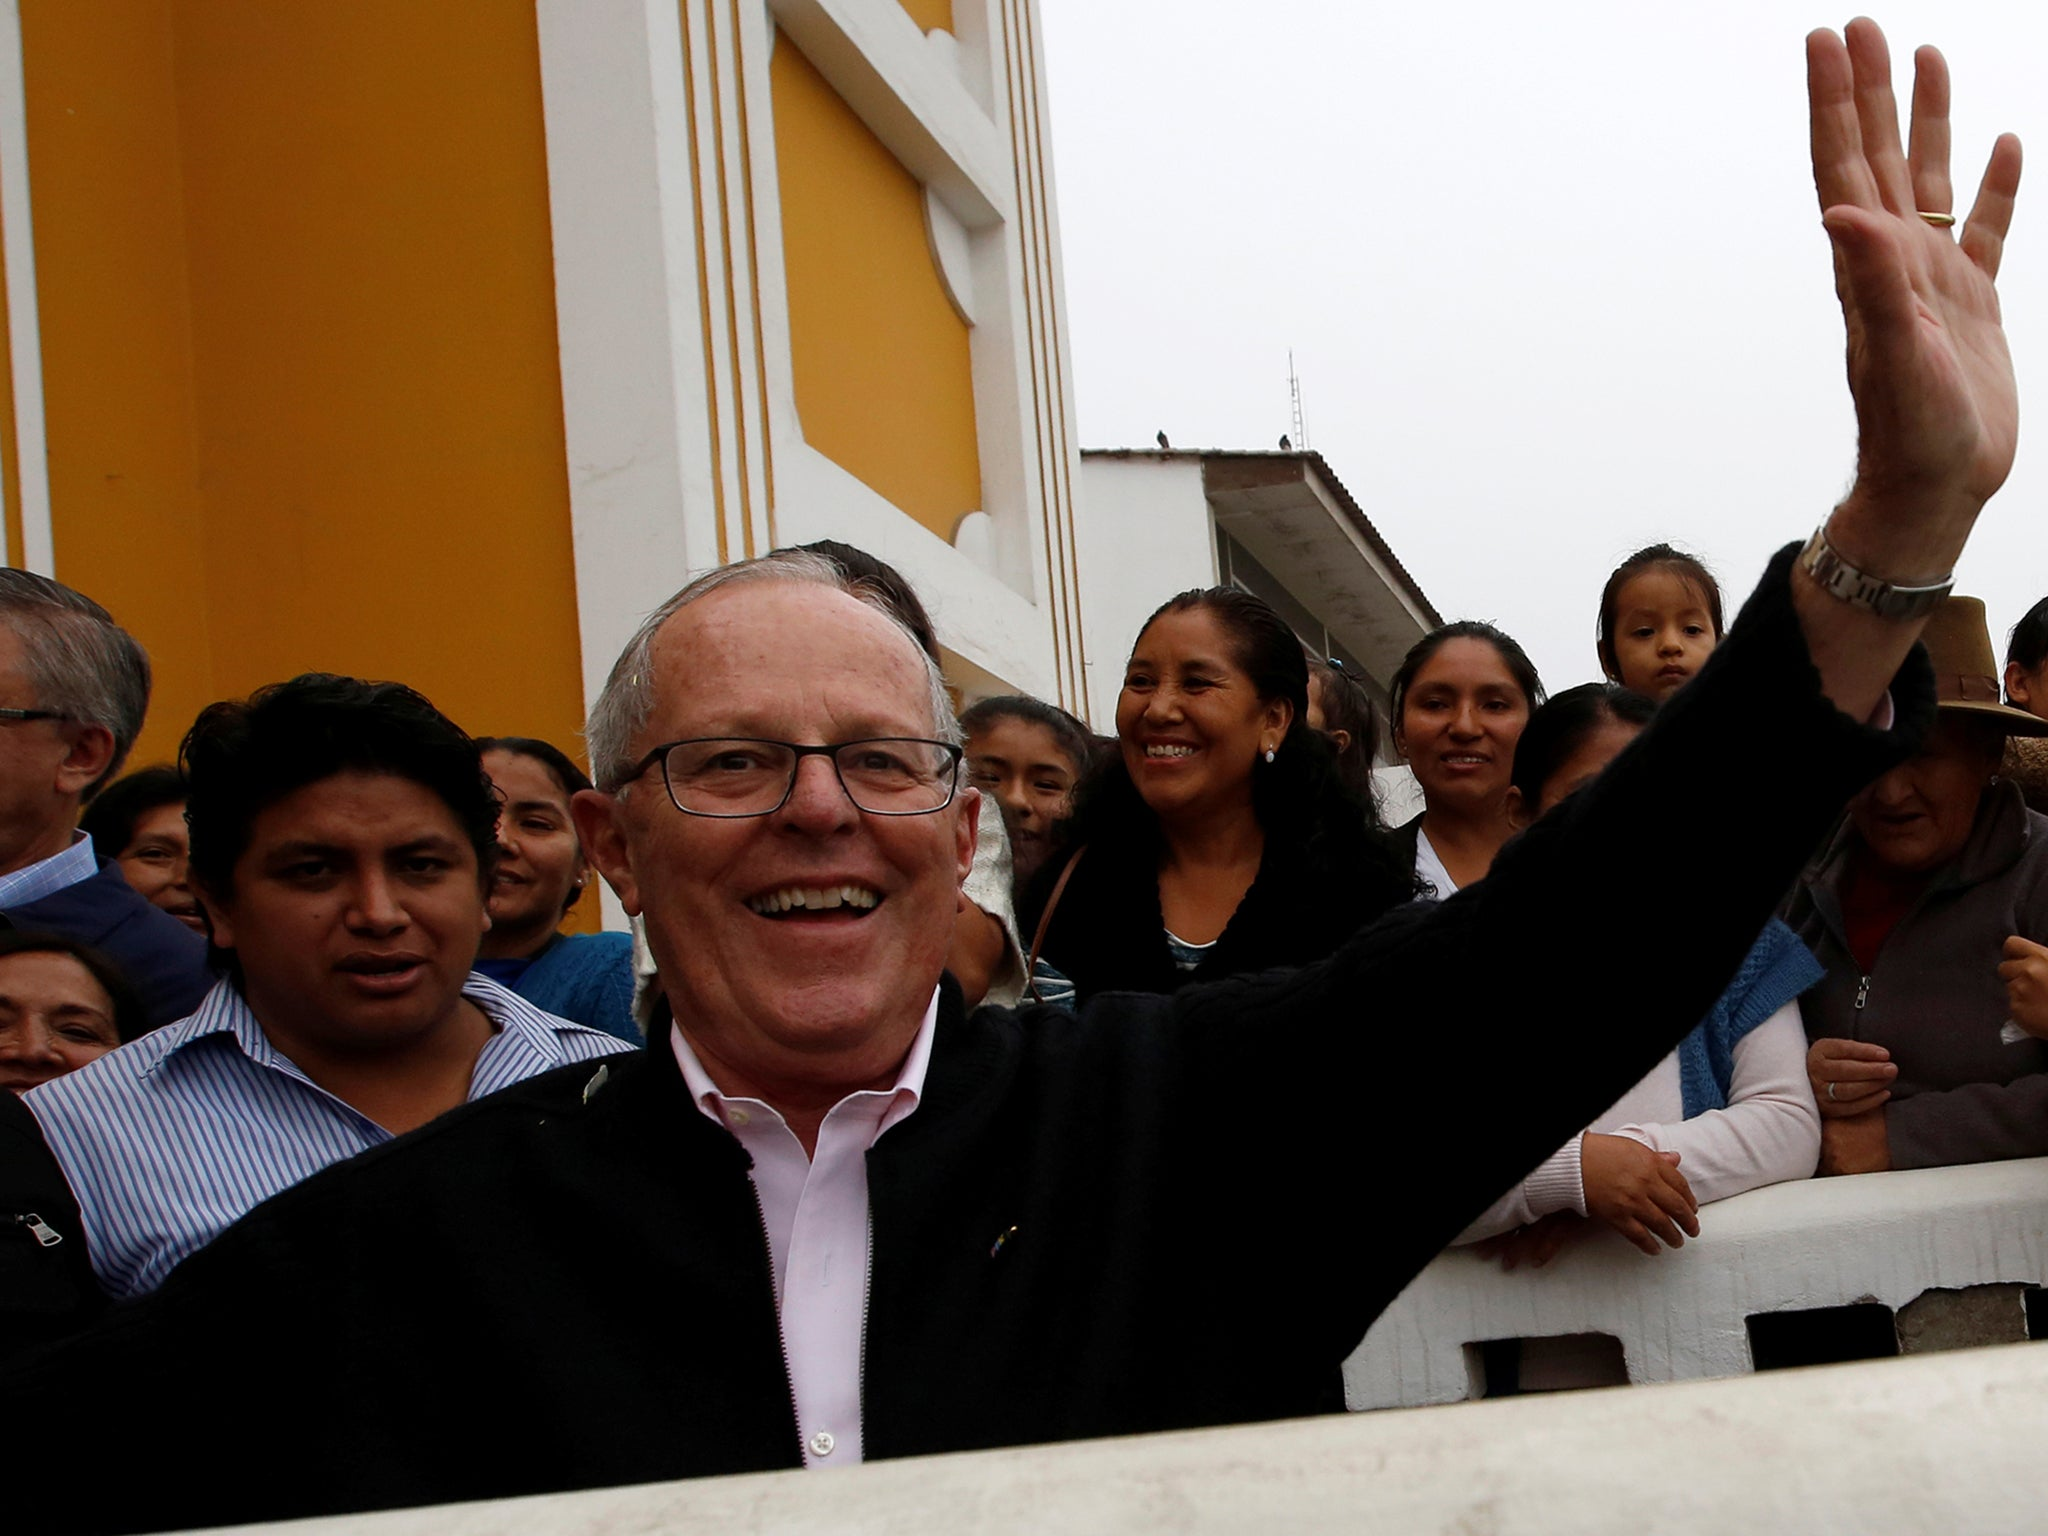 Peru's government proposes to legalise medical marijuana